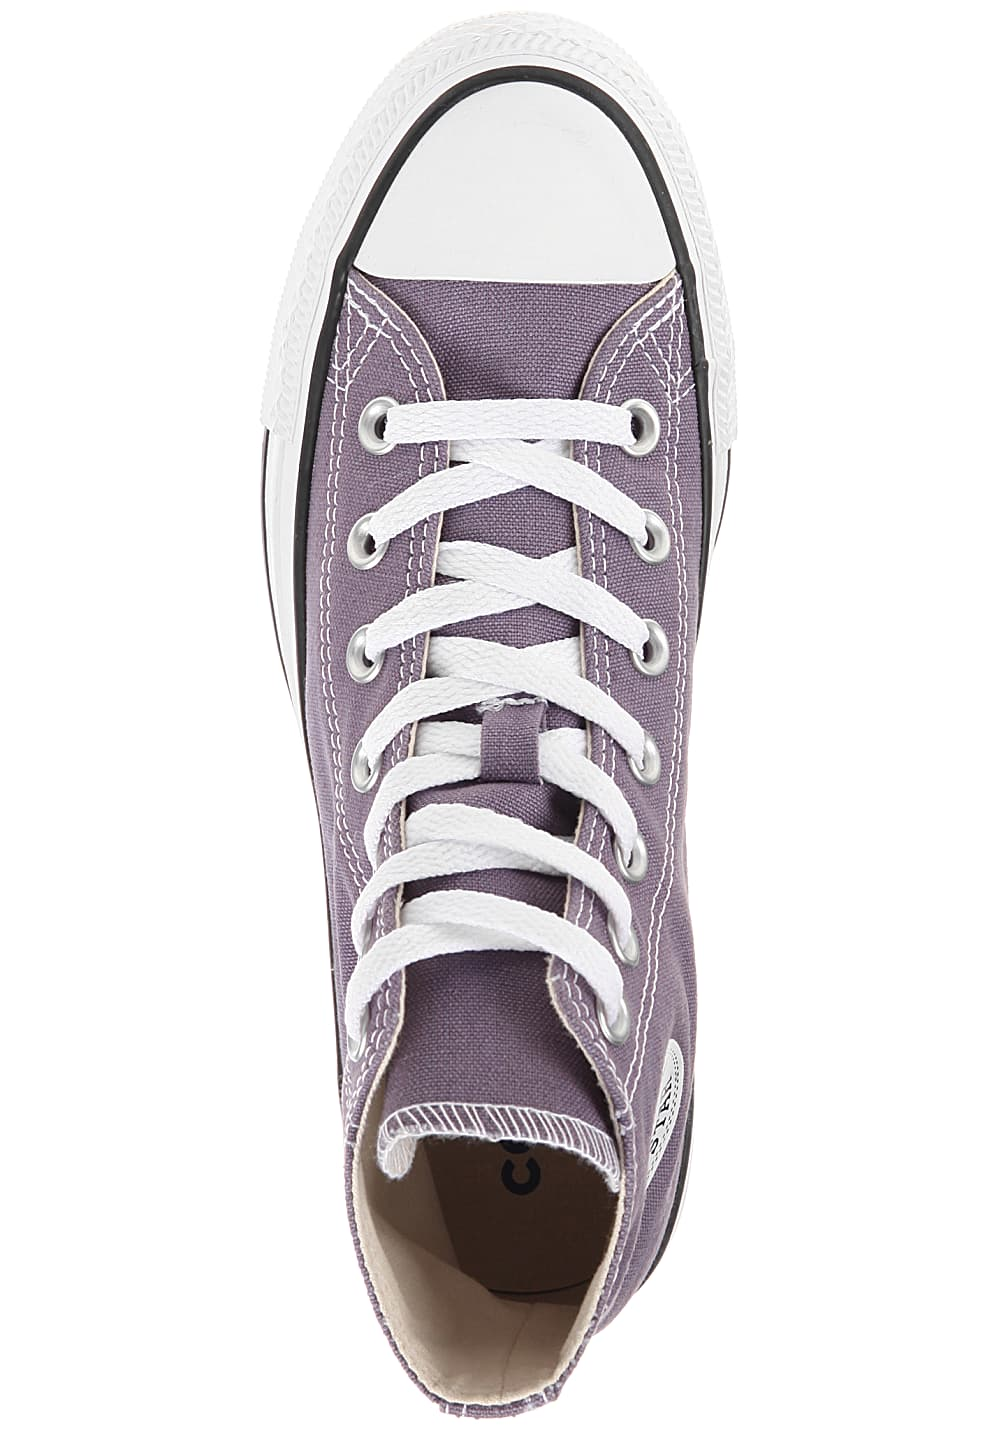 b326dade8 Converse Chuck Taylor All Star Hi - Sneakers for Women - Purple ...